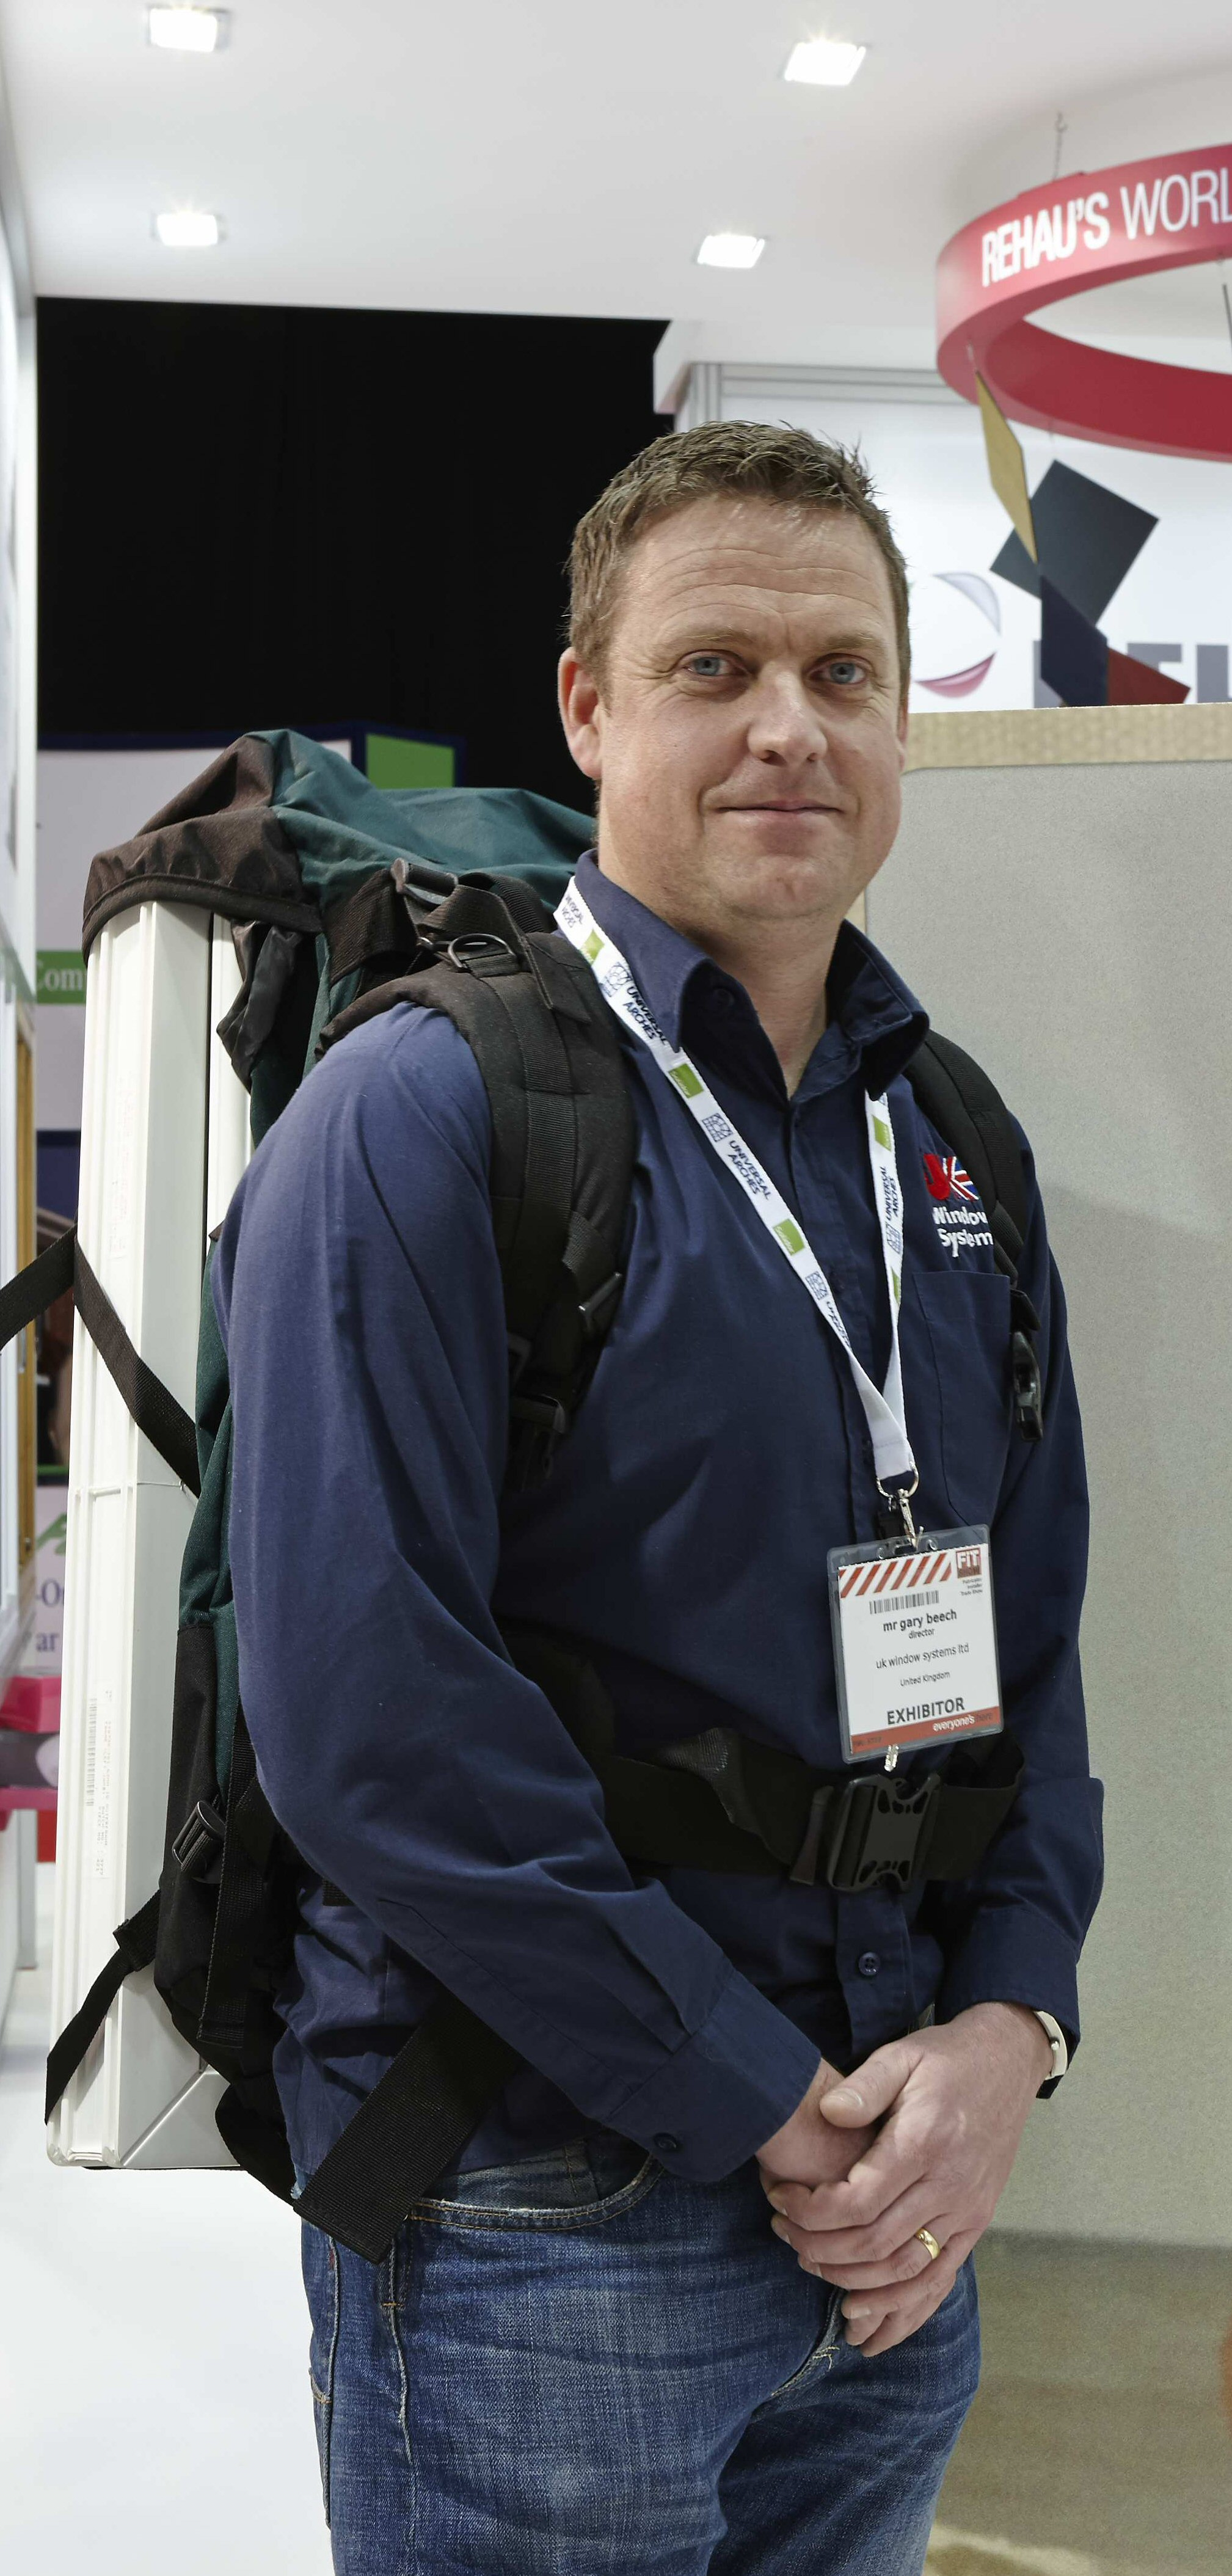 UK WINDOW SYSTEMS GET IN TRAINING FOR MOUNT KILIMANJARO AT FIT SHOW